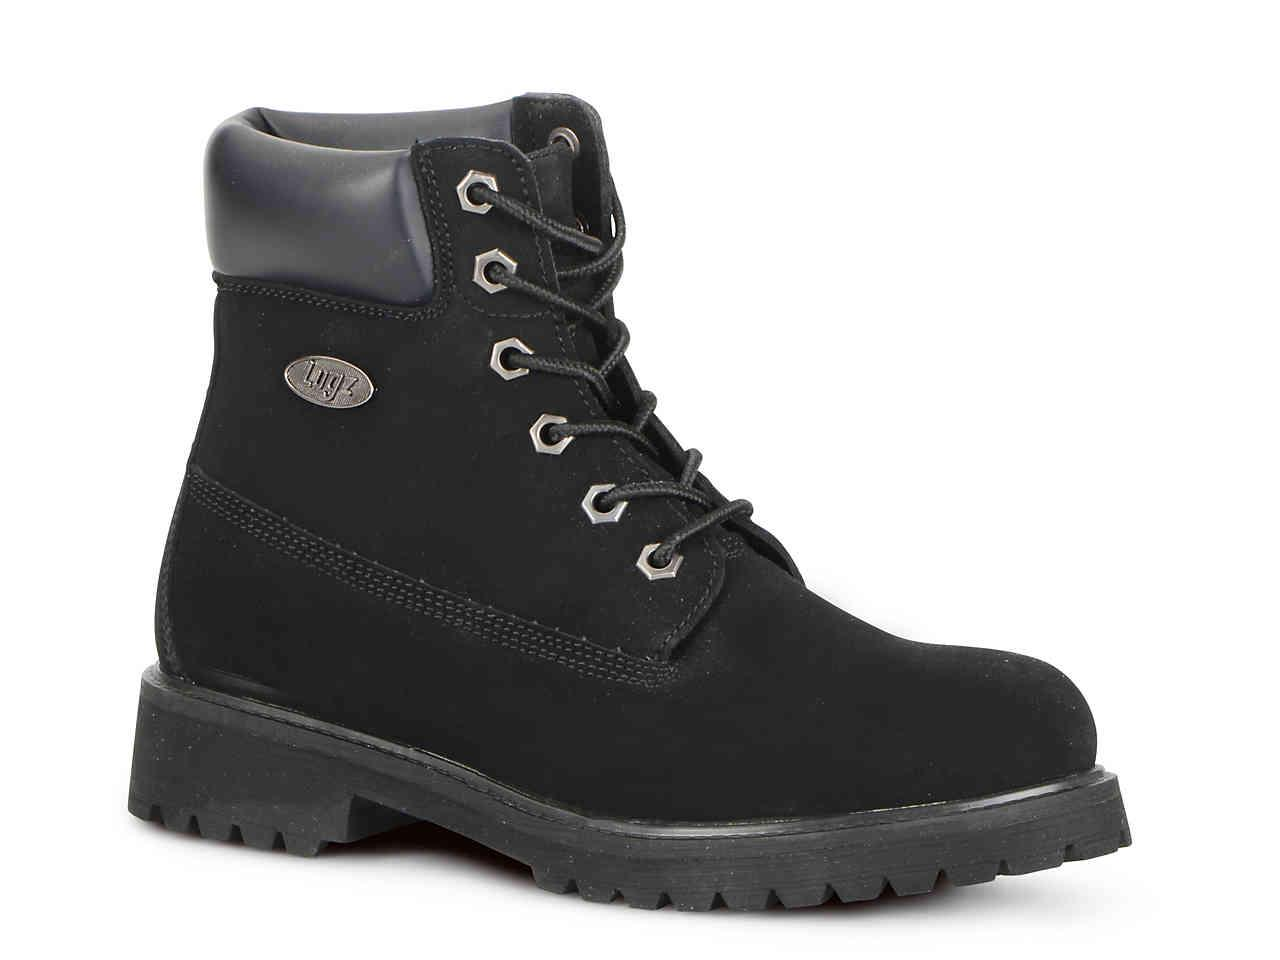 Lugz Convoy Faux-Fur Women's ... Ankle Boots cheap sale fake free shipping with paypal clearance clearance store hot sale sale online 25K1qXjQbb